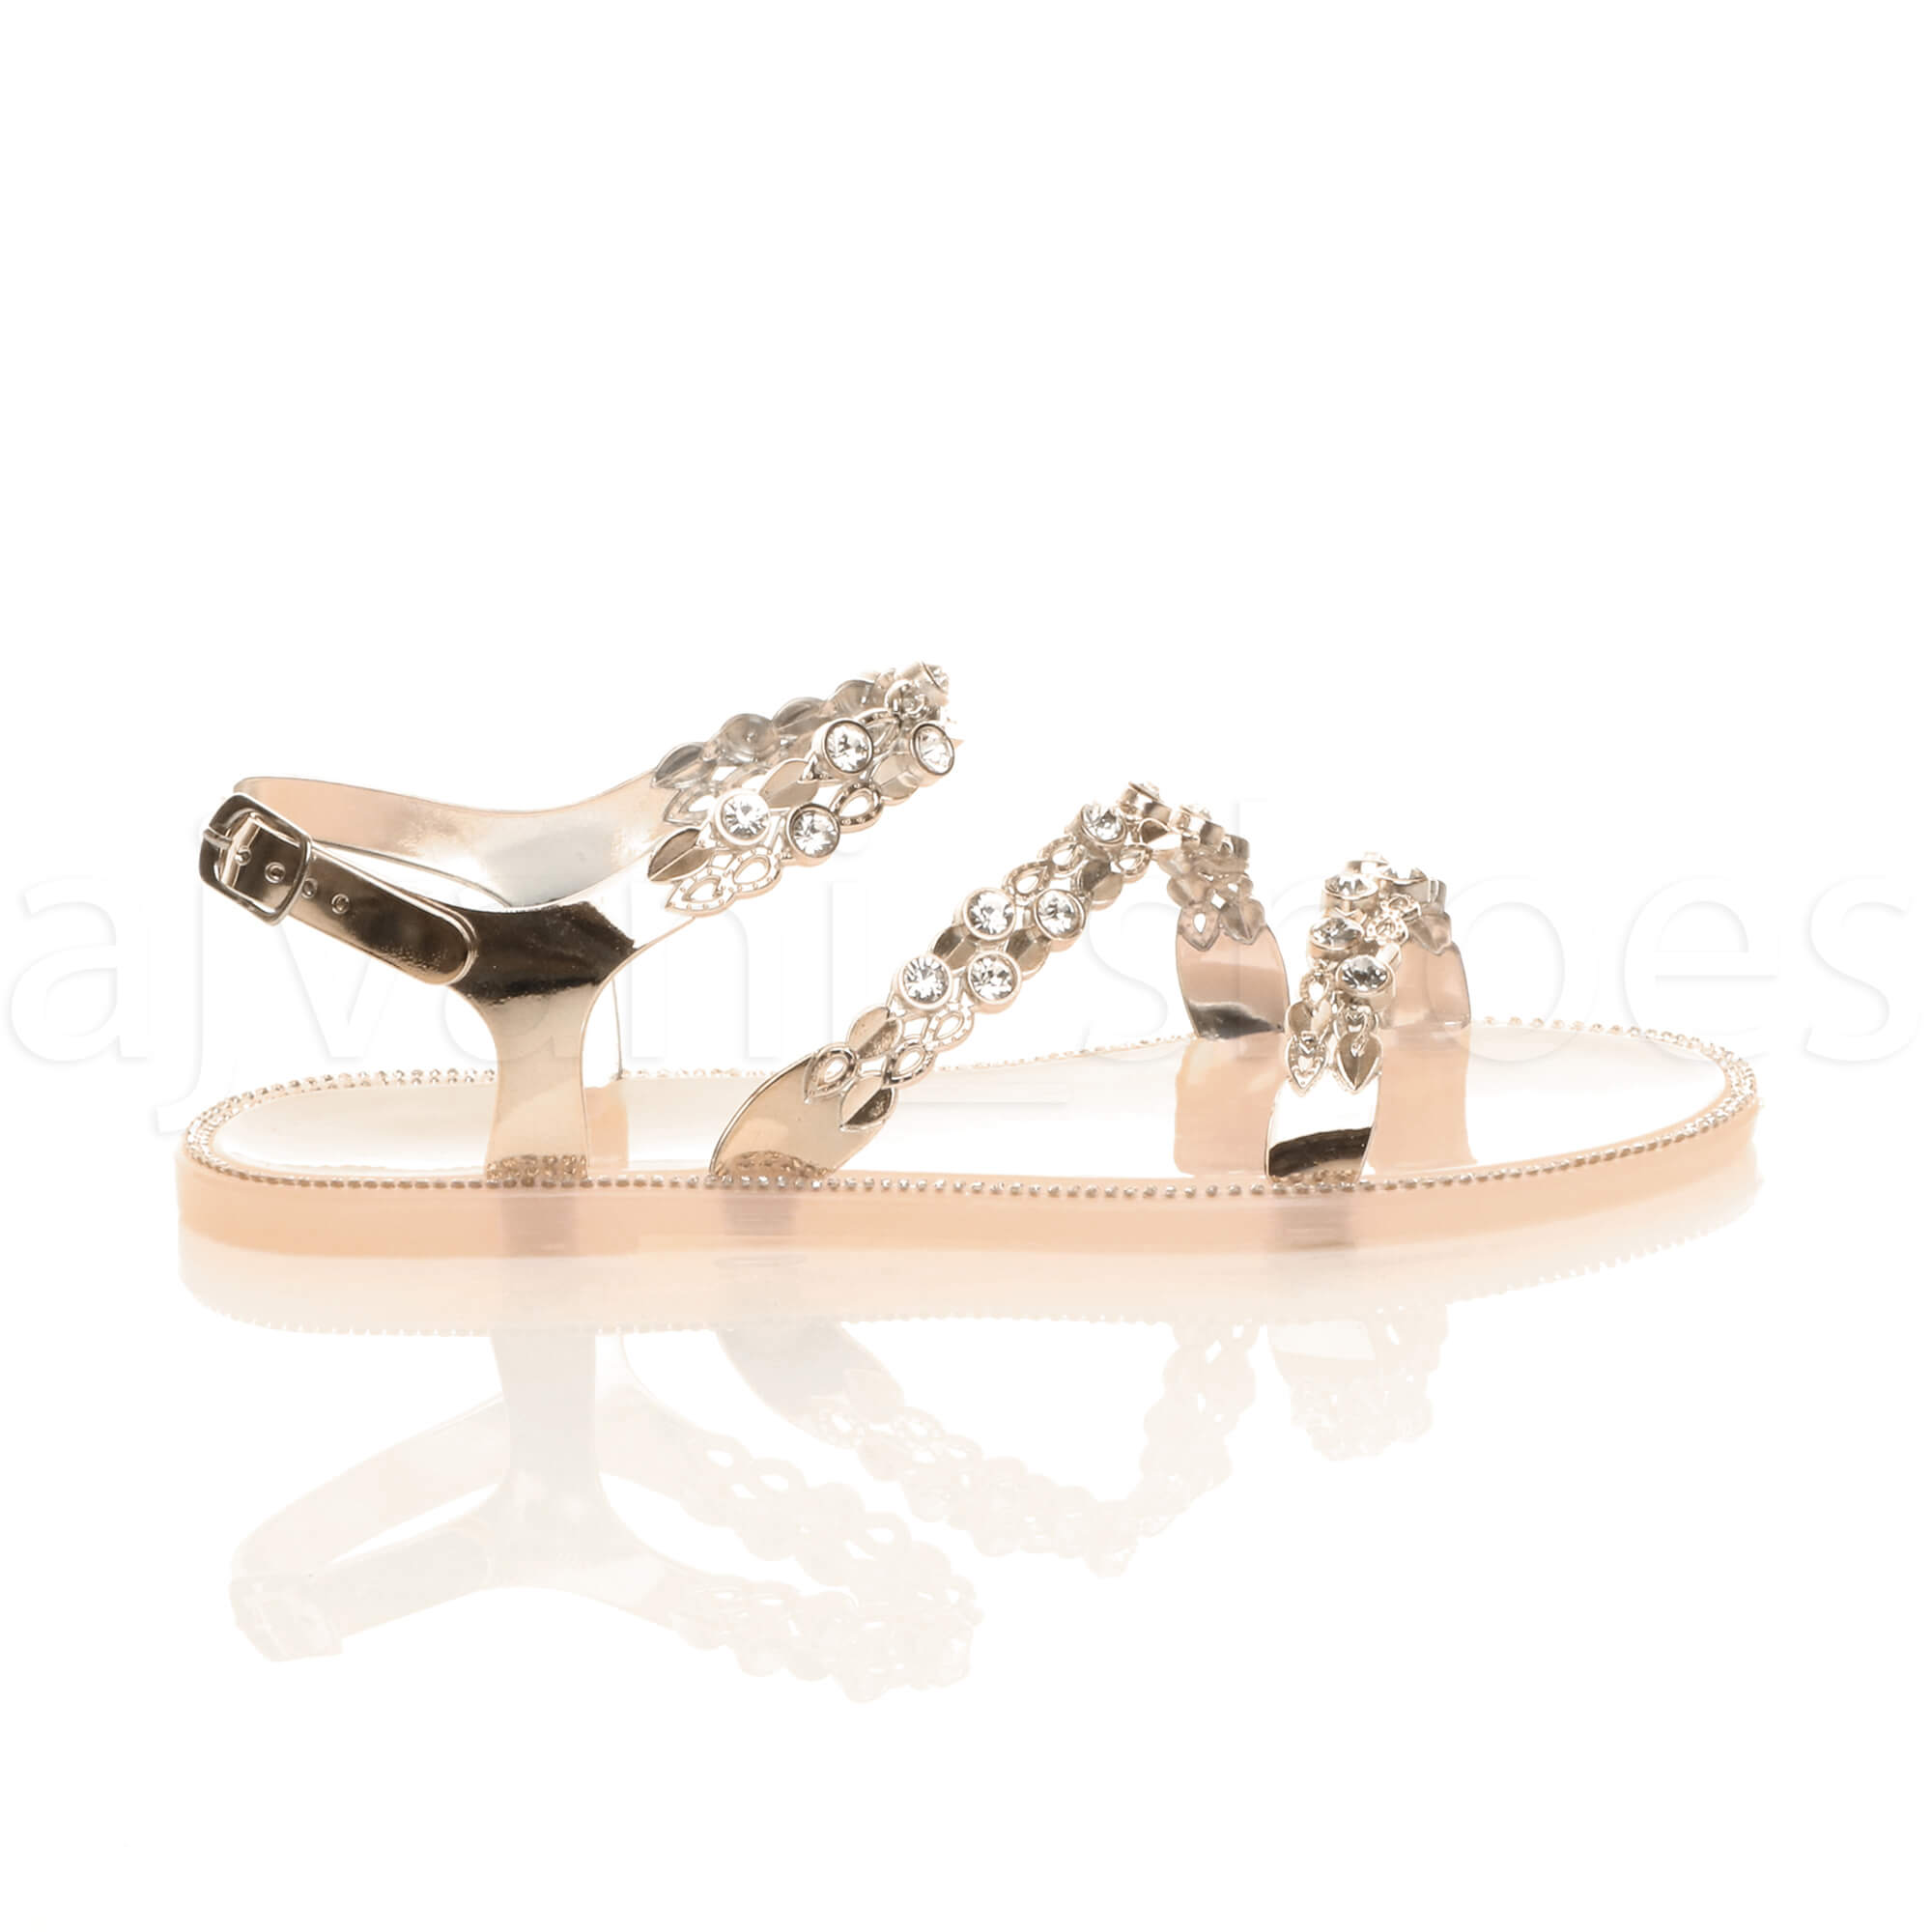 WOMENS LADIES FLAT DIAMANTE STRAPPY BUCKLE SUMMER JELLY BEACH SANDALS SIZE